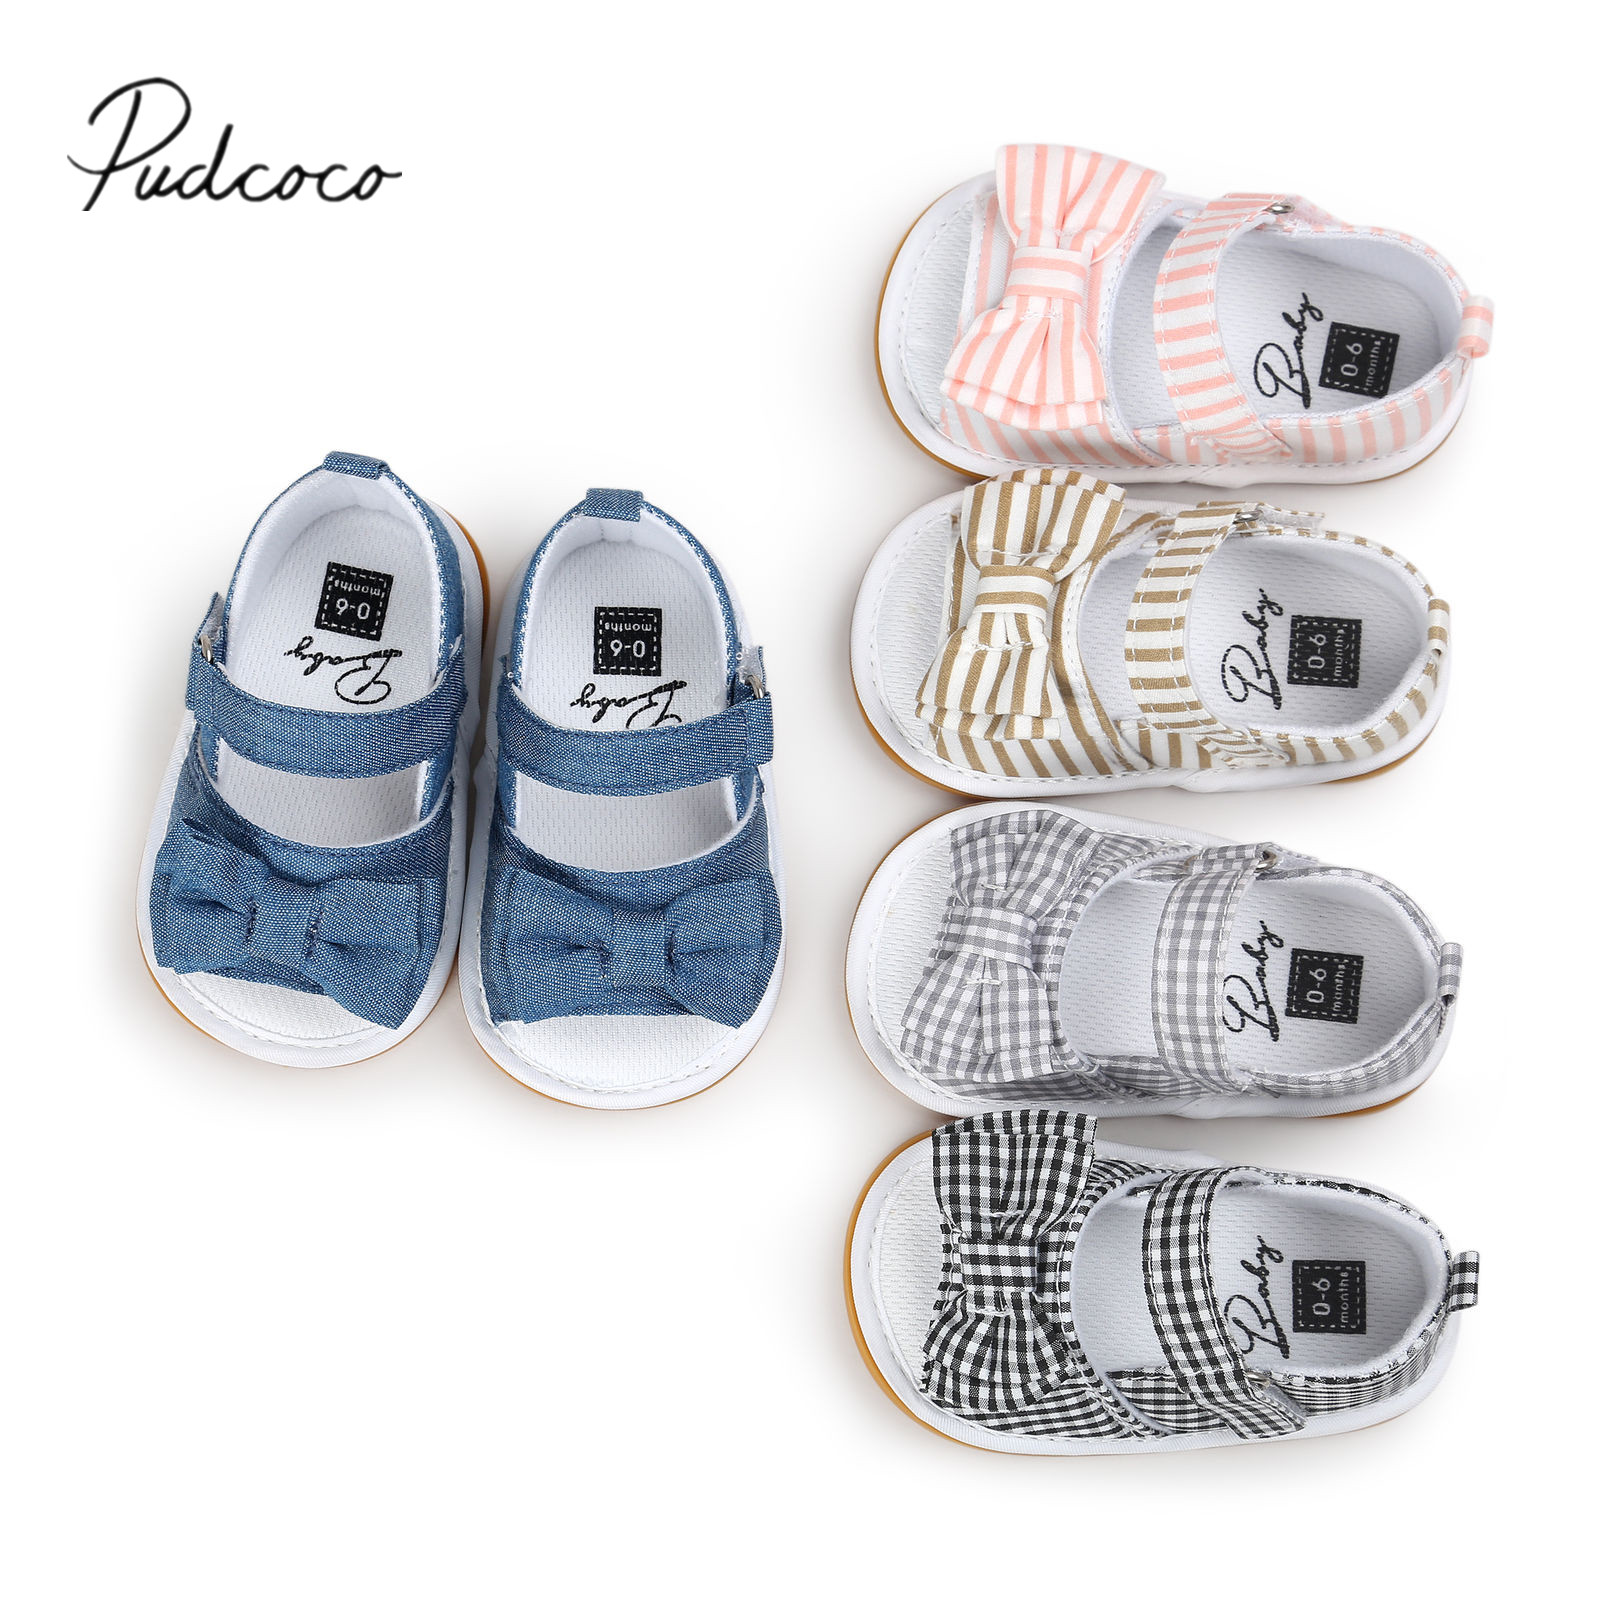 2018 Brand New Toddler Infant Newborn Princess Shoes Girls Sandal Summer Infant Baby Bow Knot Prewalker Stick Bow Striped Shoes